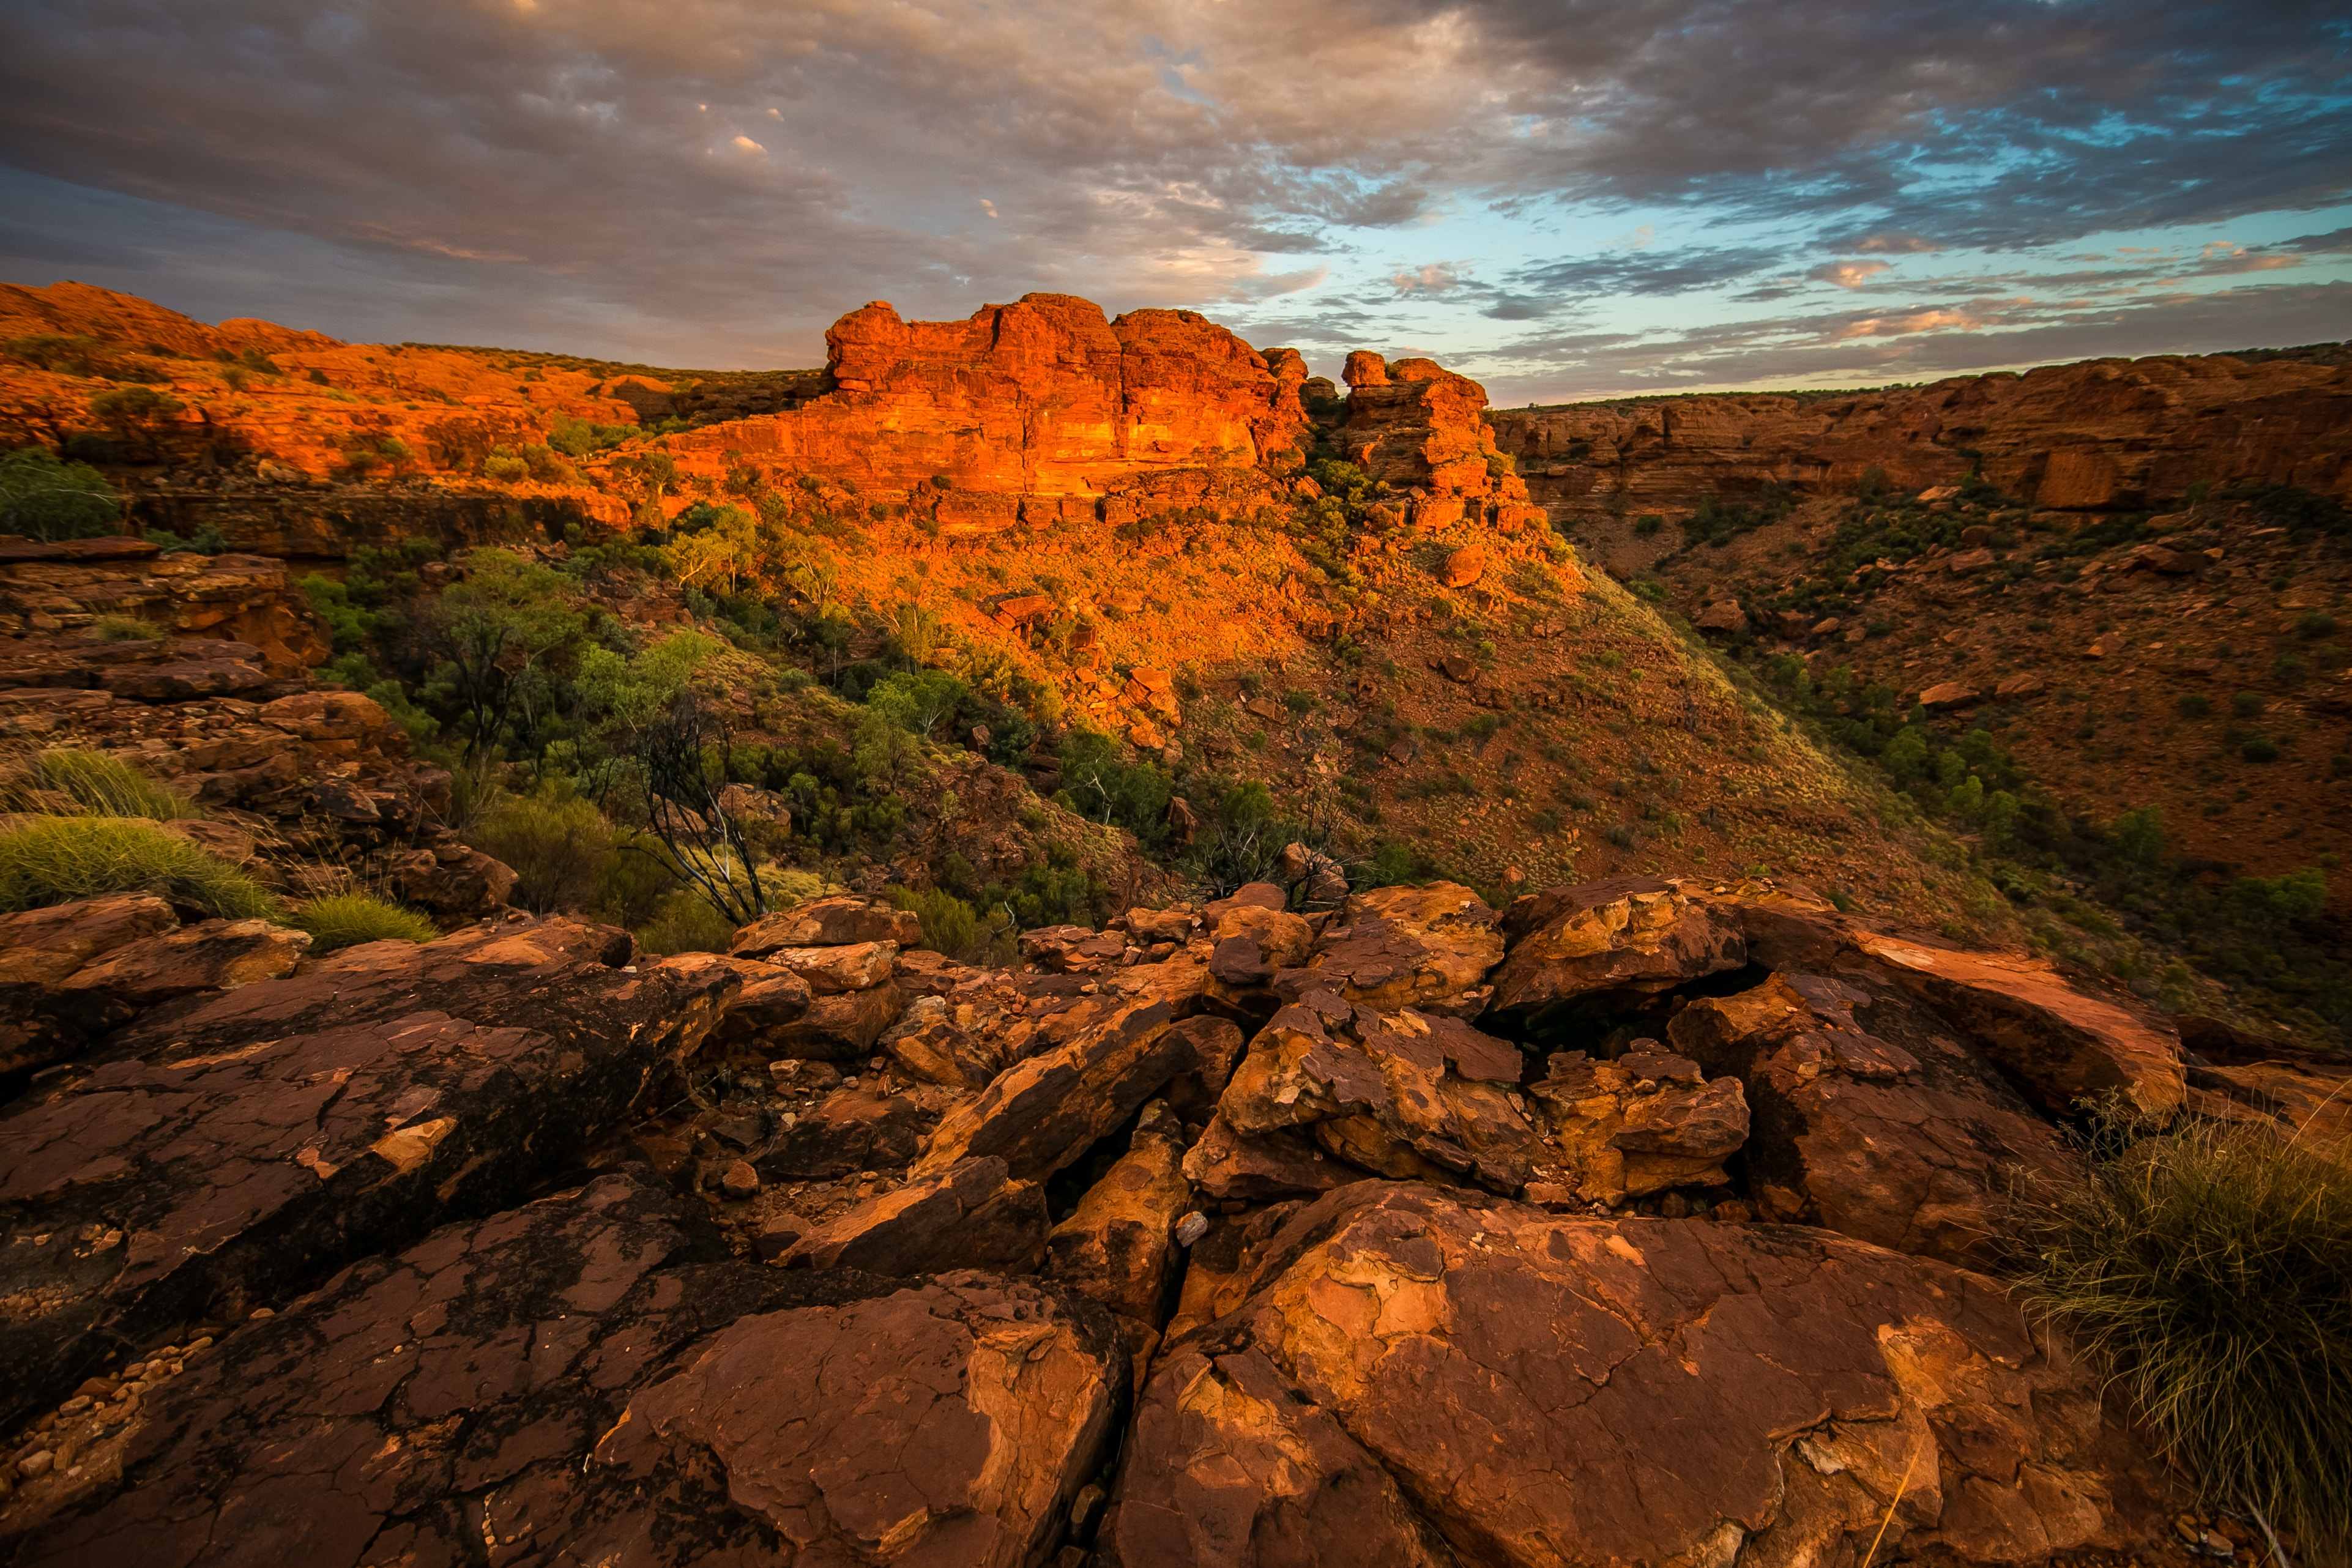 Image of the Australian Outback